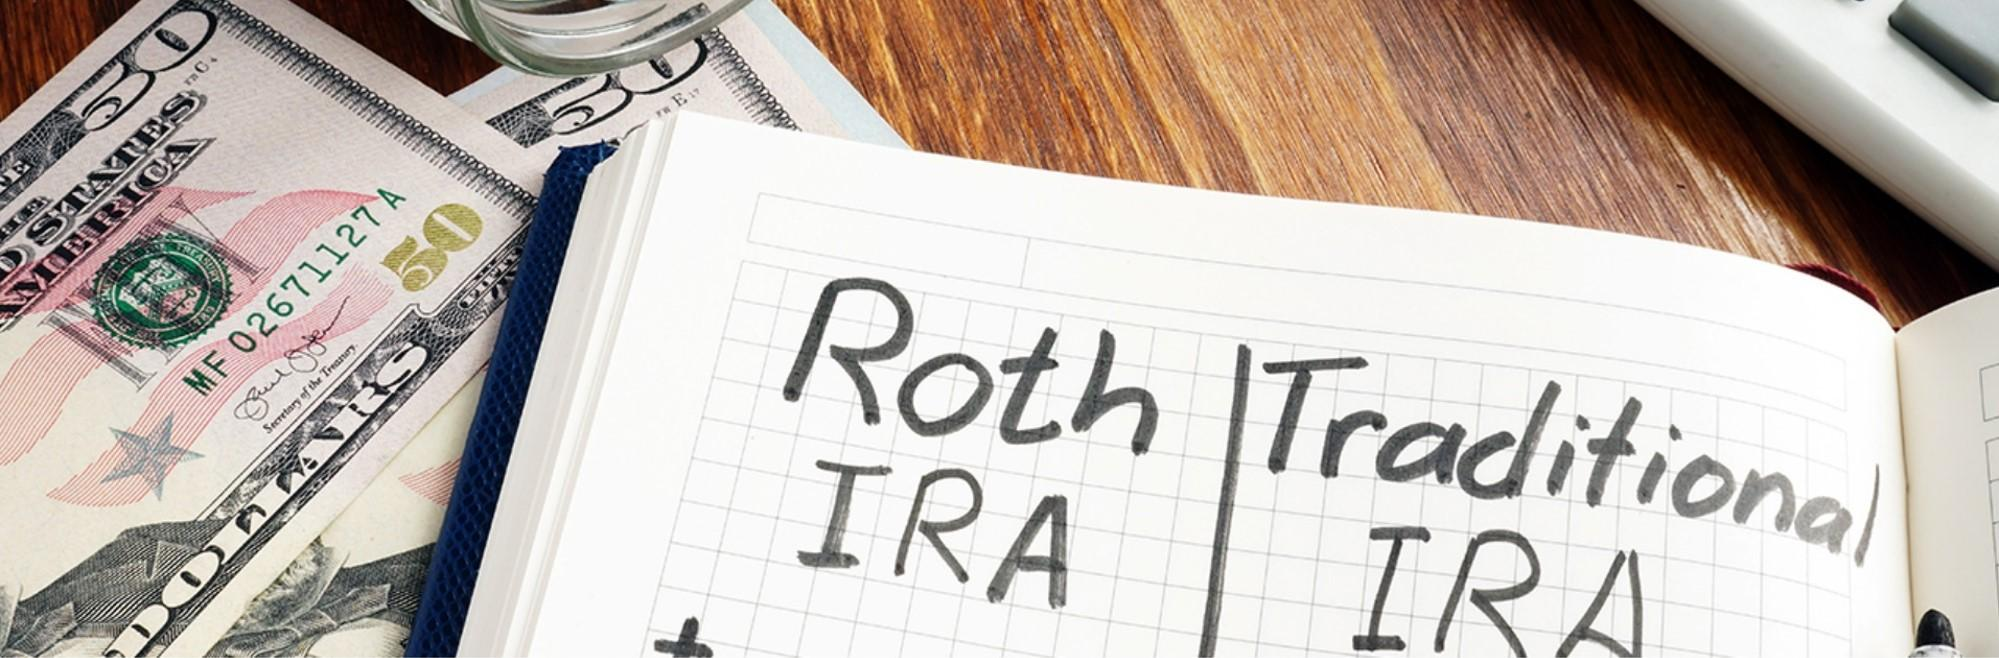 Traditional or Roth IRA? Thumbnail